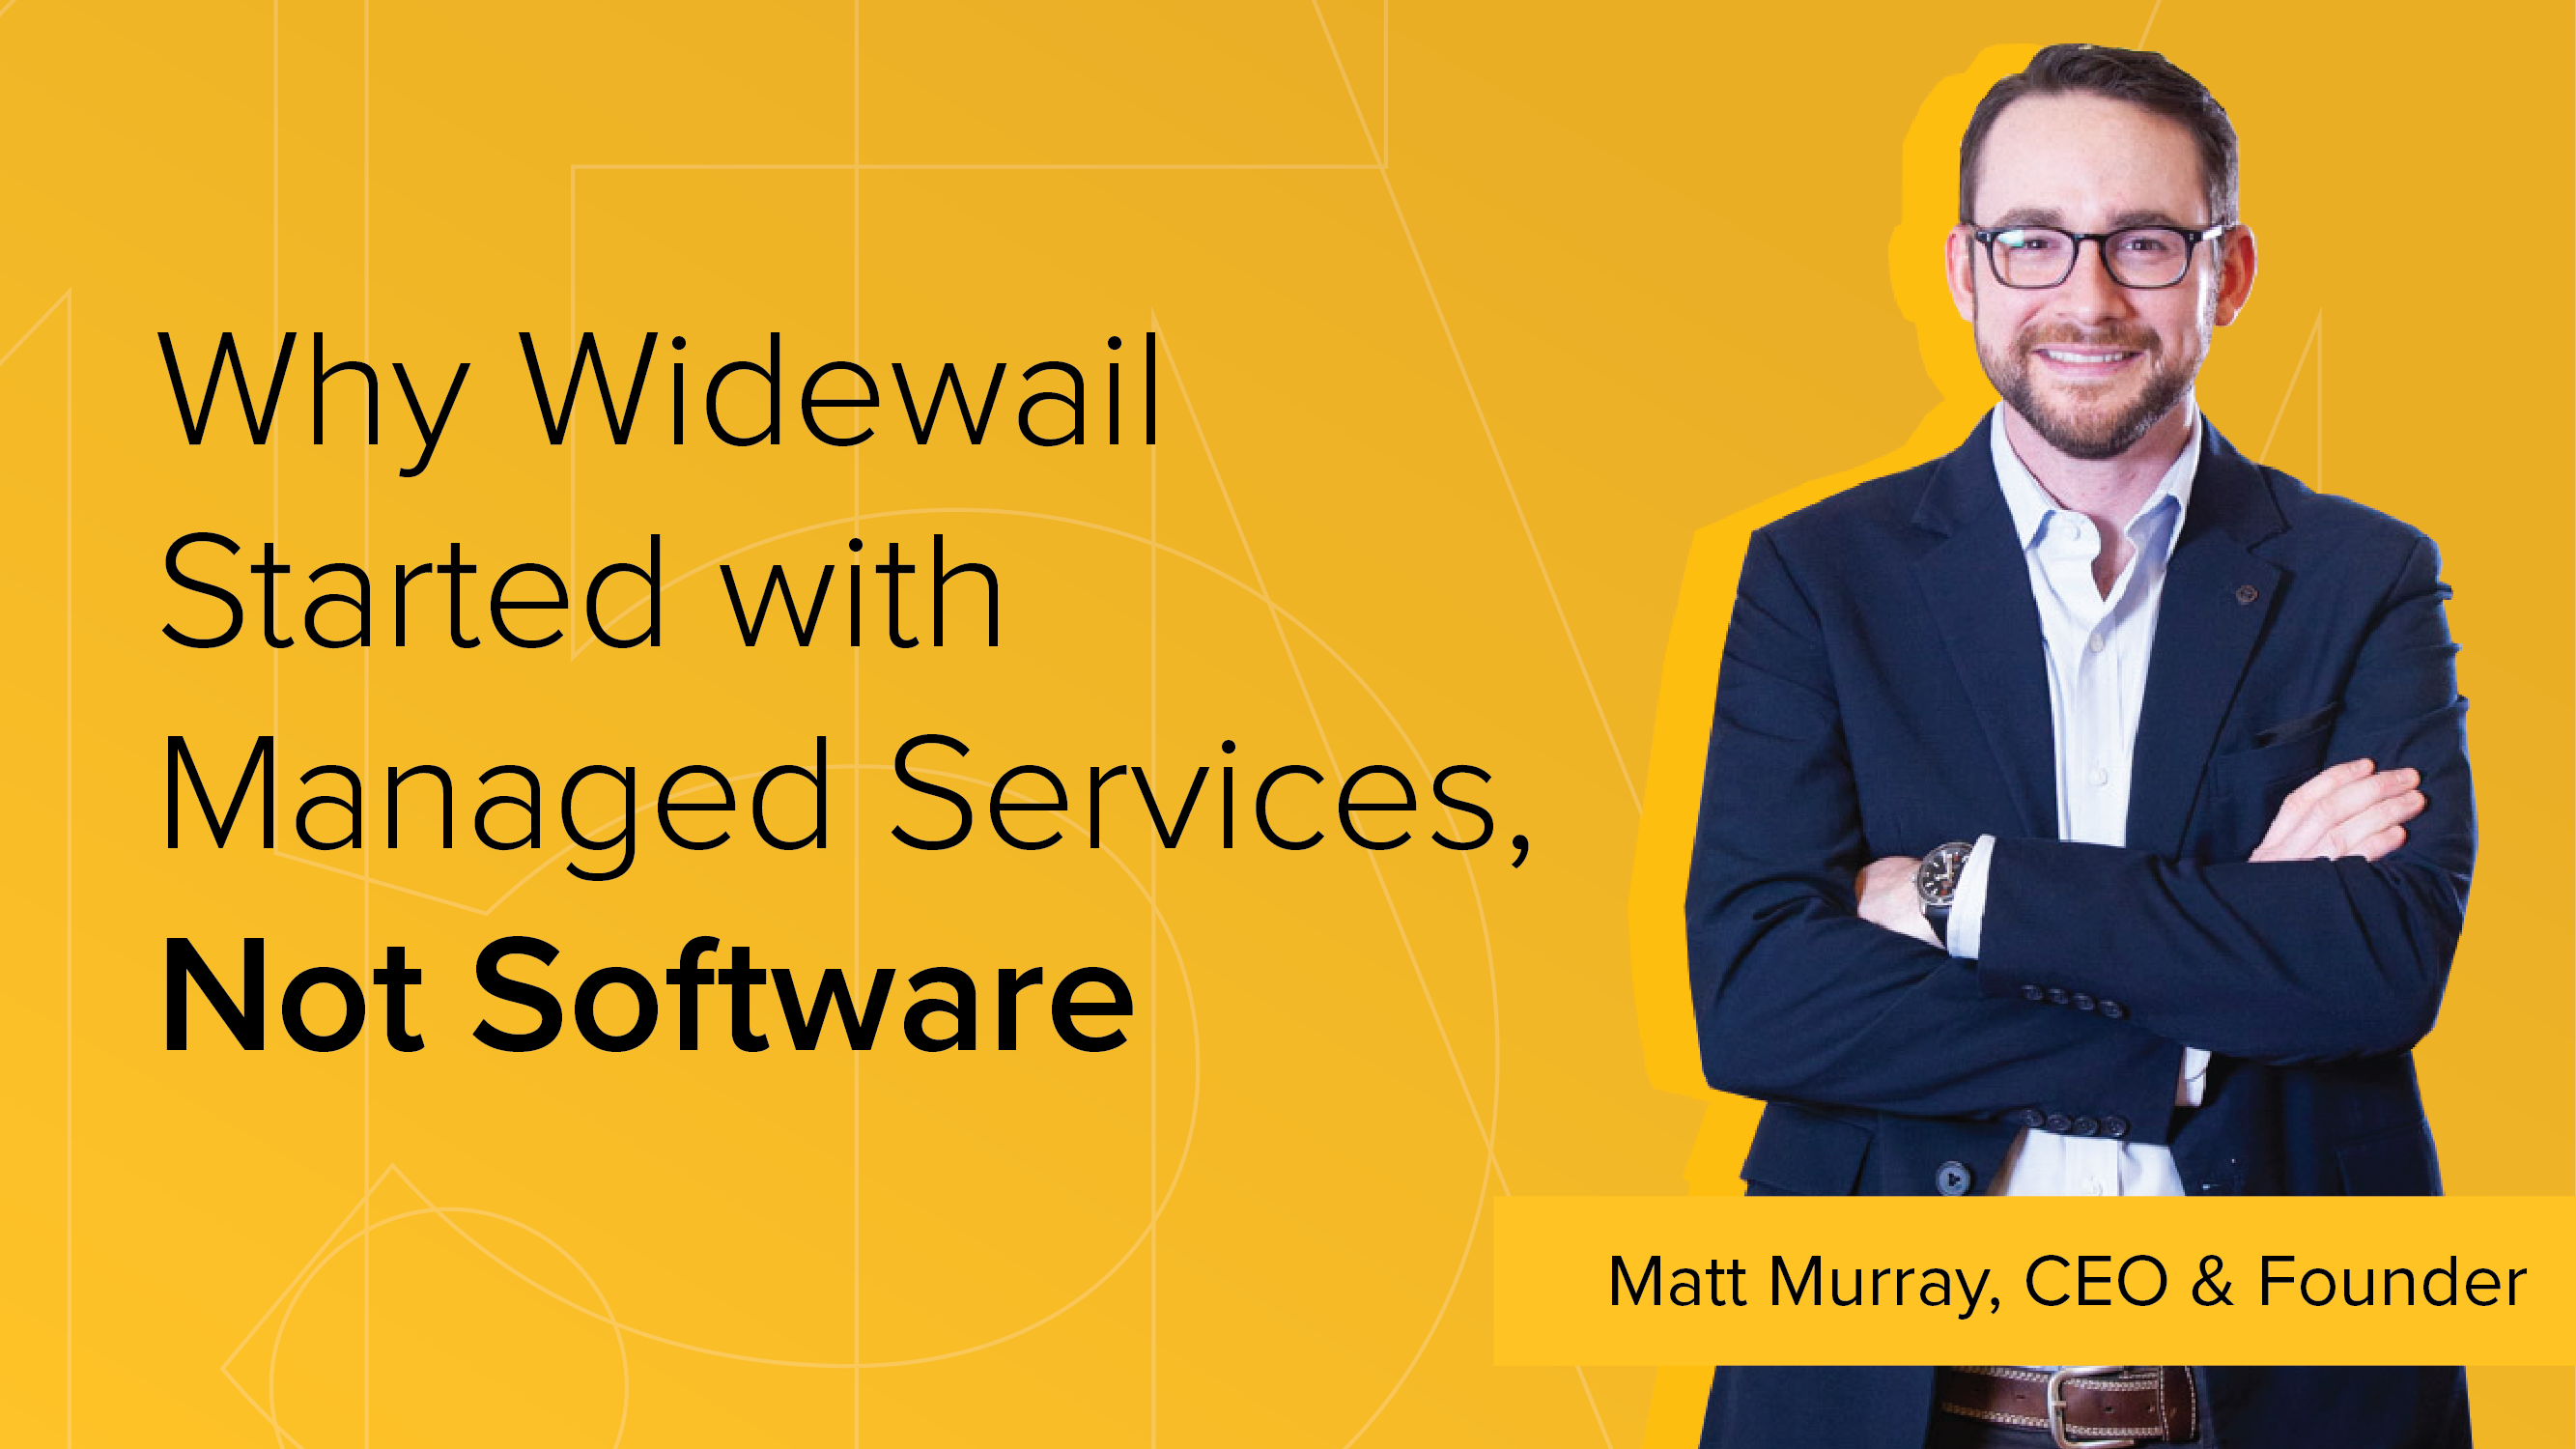 Start with Managed Services